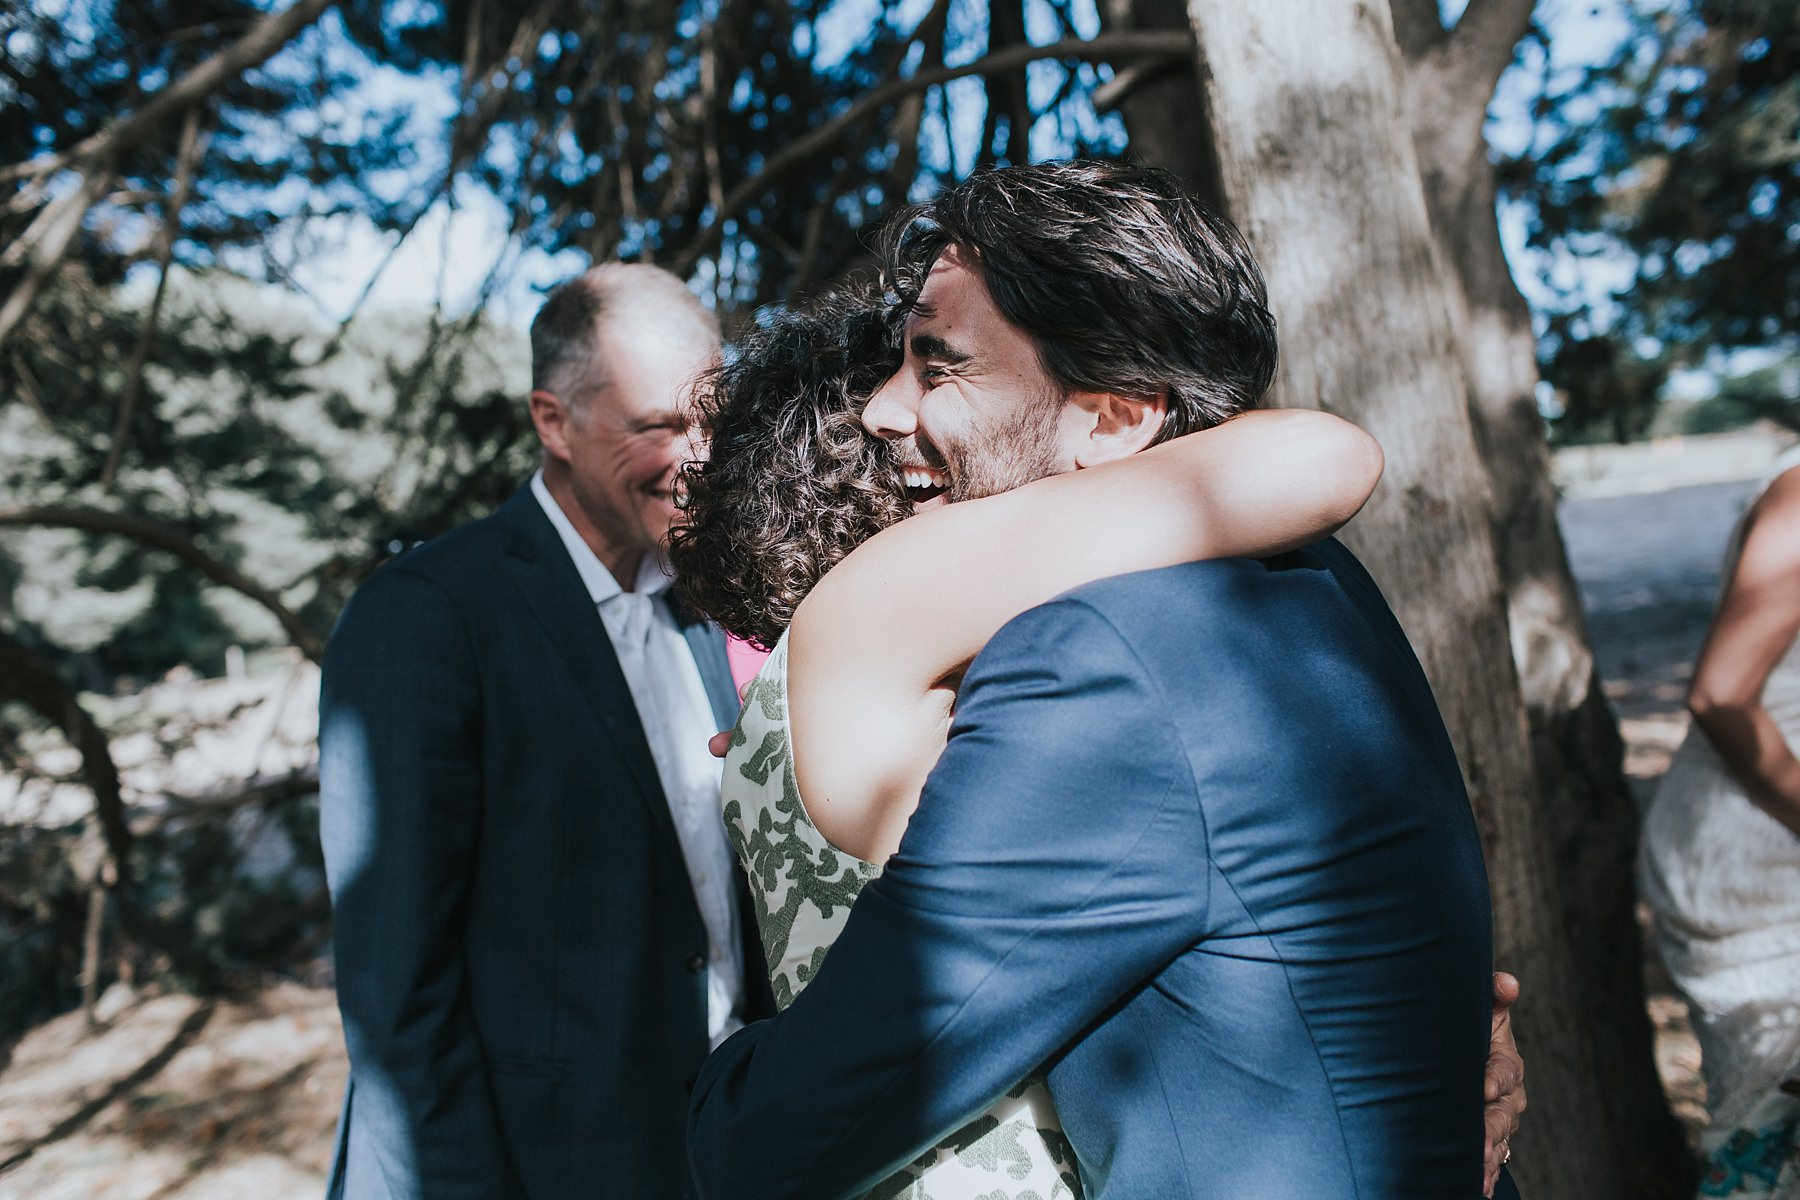 excited hugs and tears at wedding ceremony